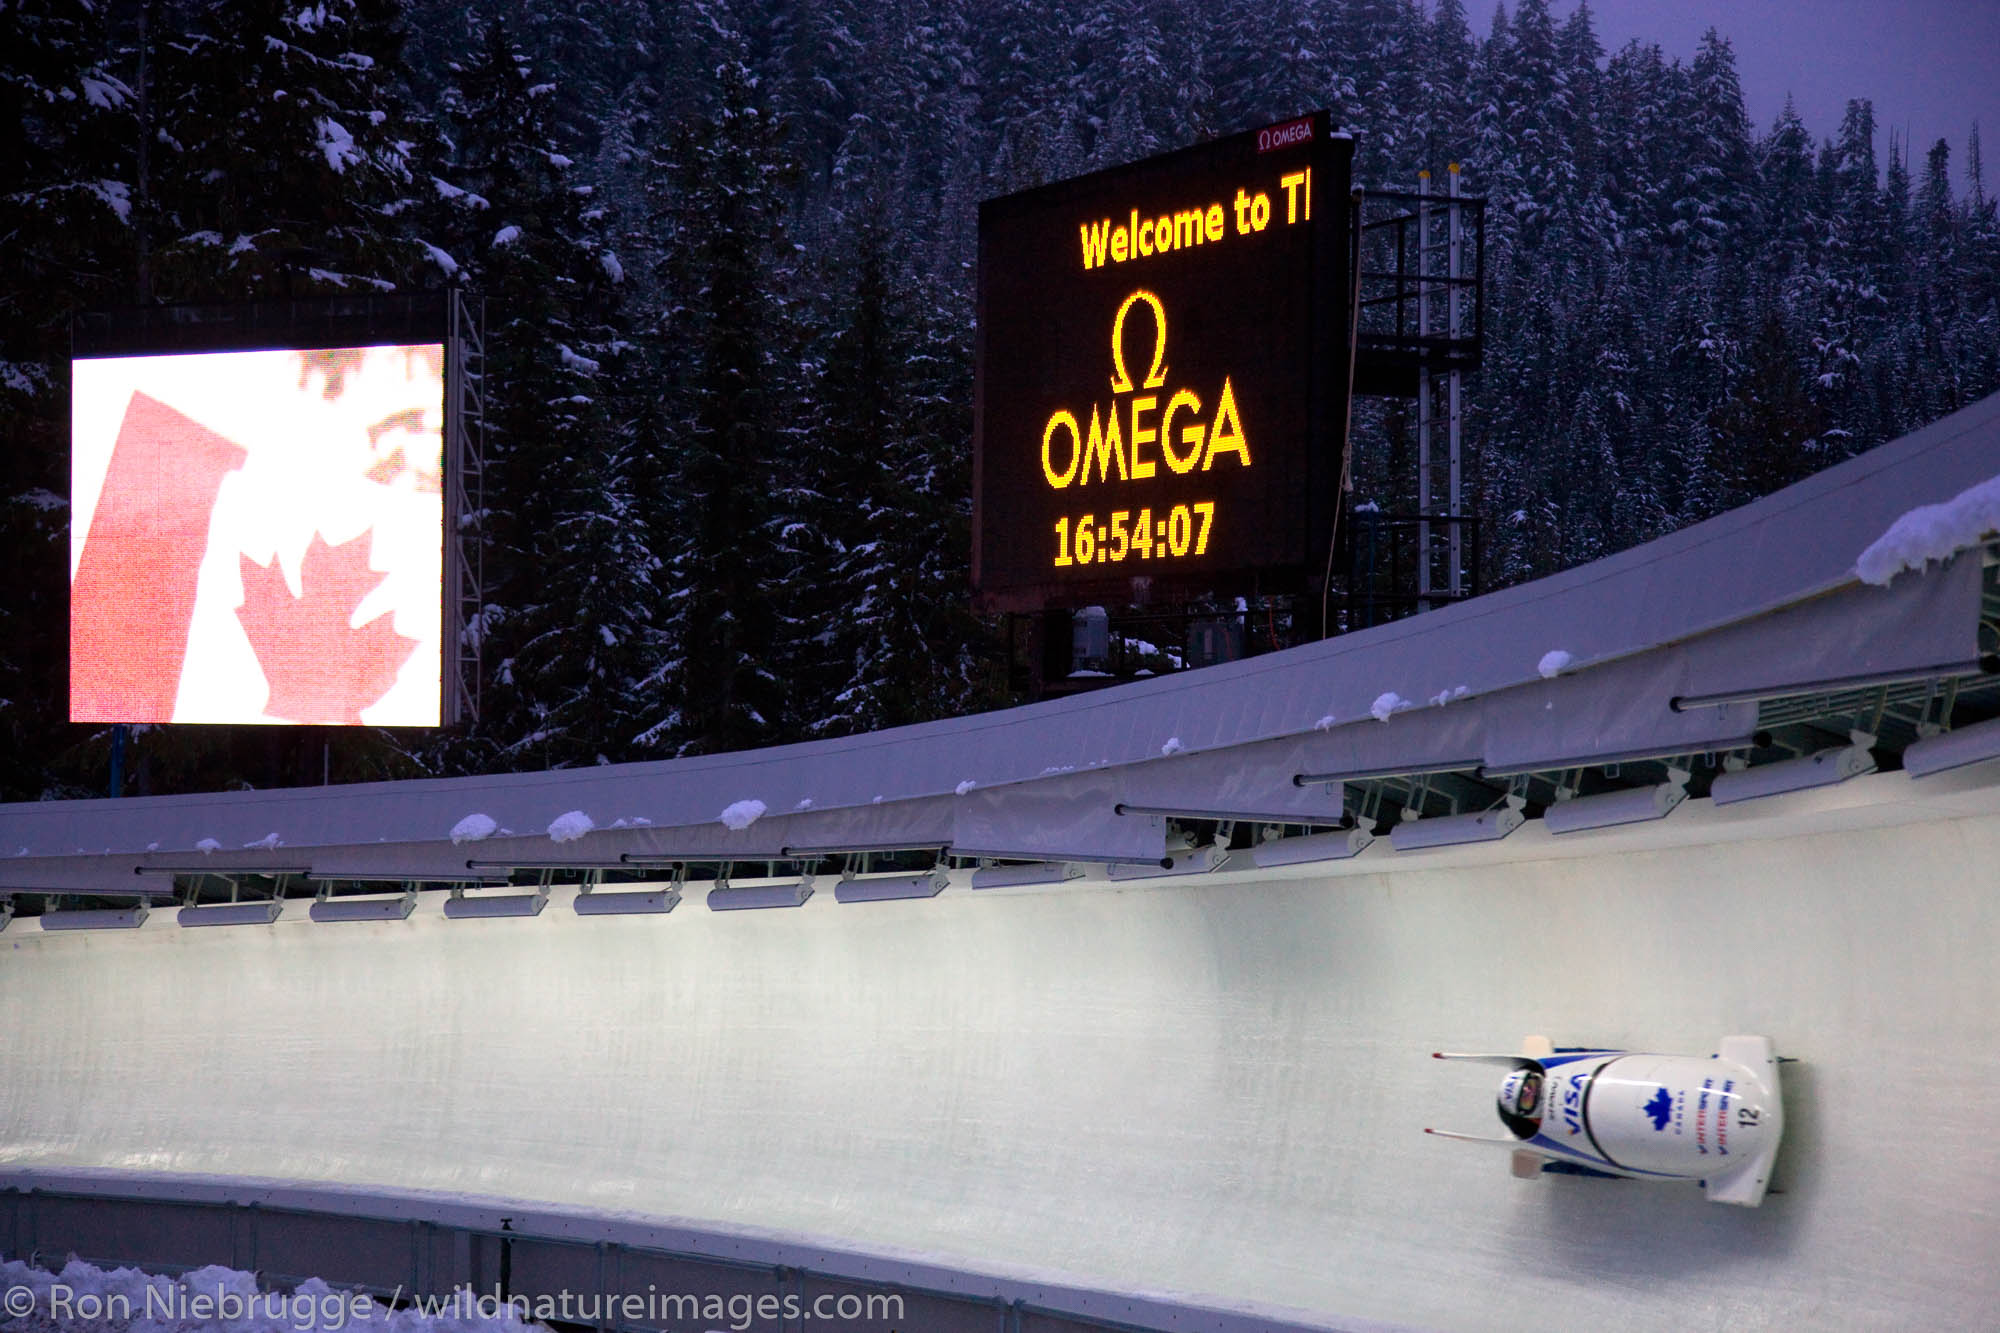 A bobsled during a World Cup practice at the Whistler Sliding Centre, a sports venue for the 2010 Vancouver Winter Olympics...